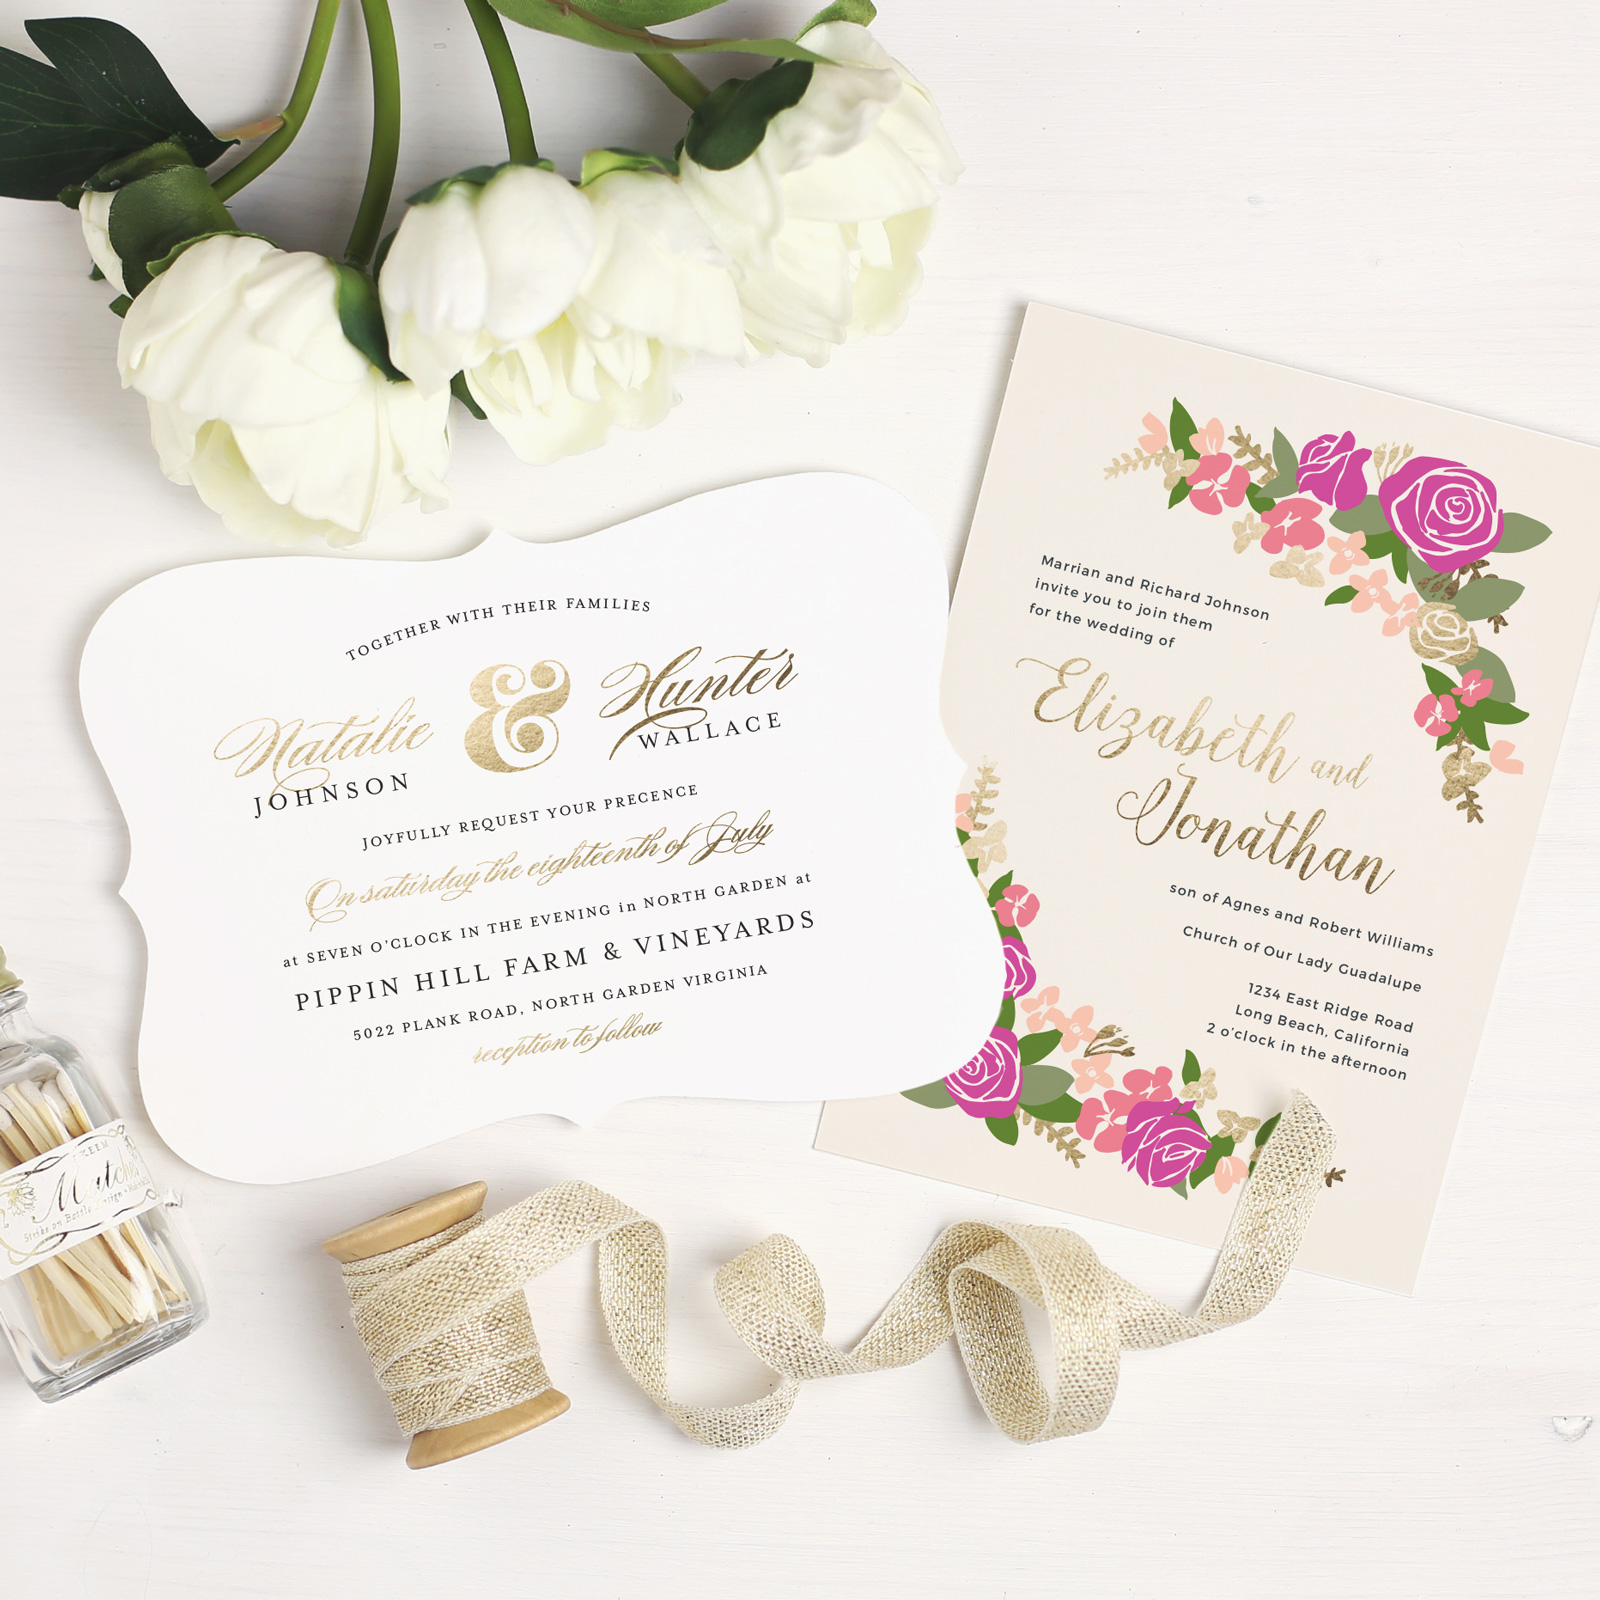 Not-So-Basic Wedding Invitations with Basic Invite - Holly Muffin